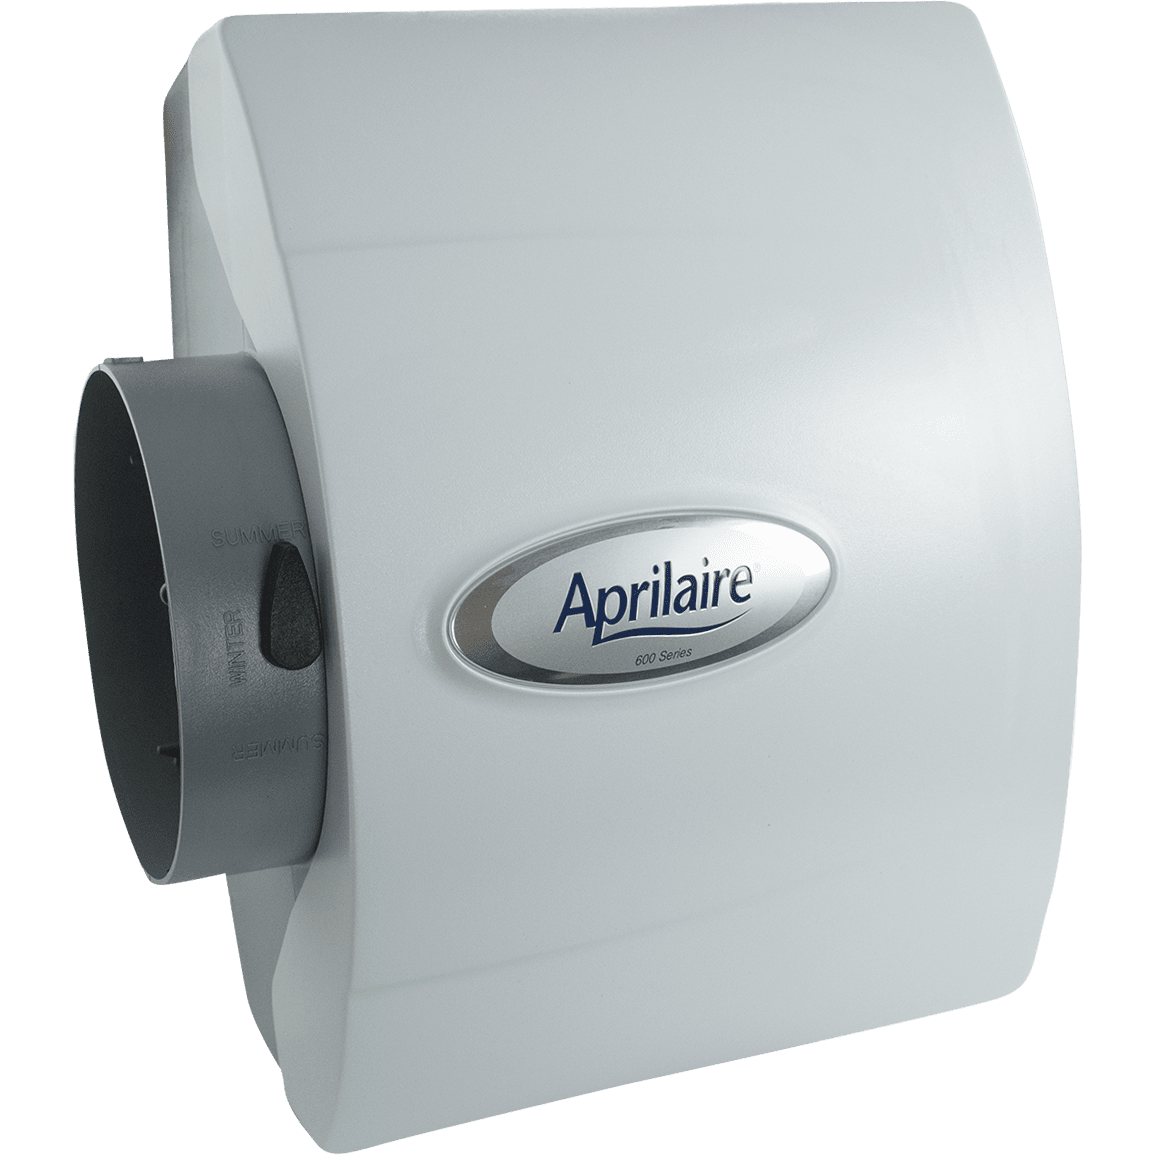 Aprilaire Model 600 Large Whole House Humidifiers Sylvane